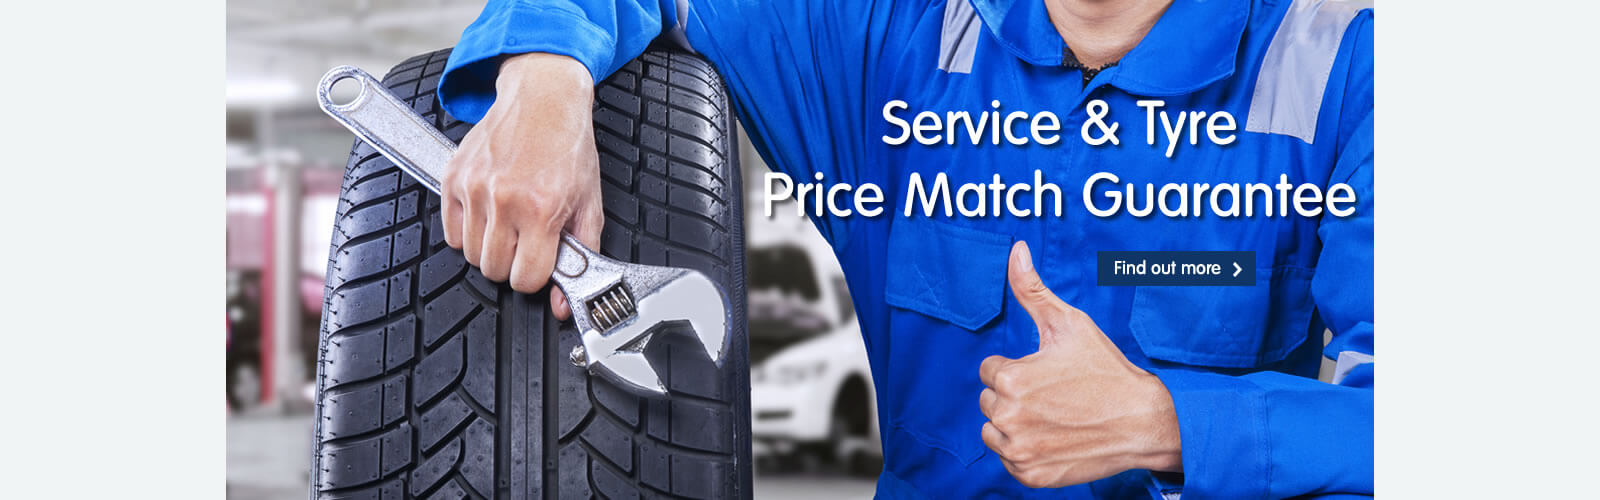 Service and Tyre price match guarantee